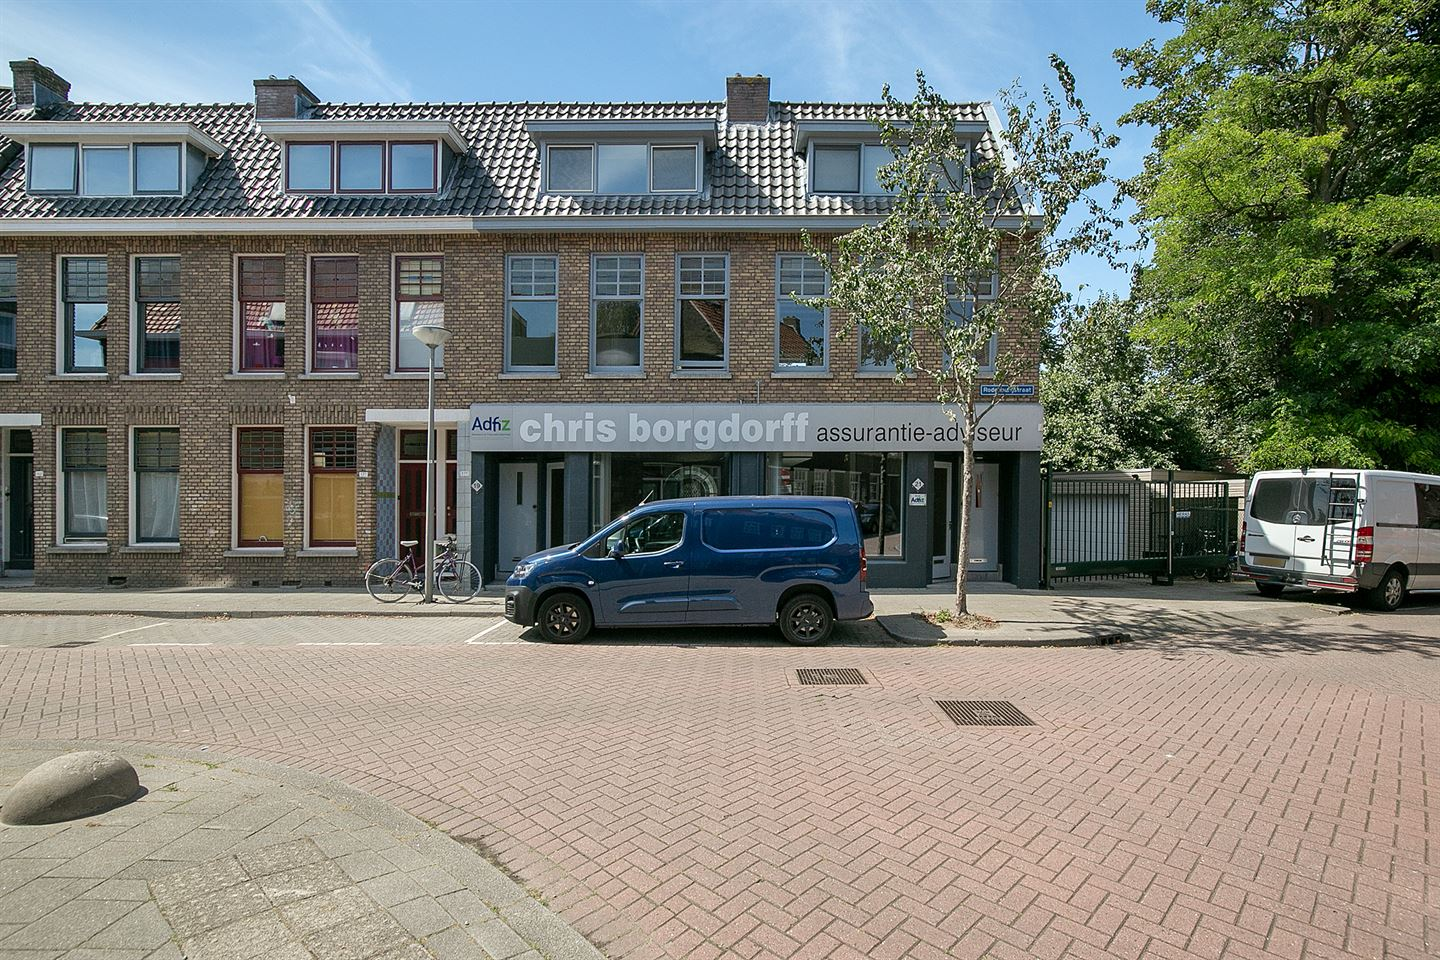 View photo 2 of Rodenburgstraat 19 - 21